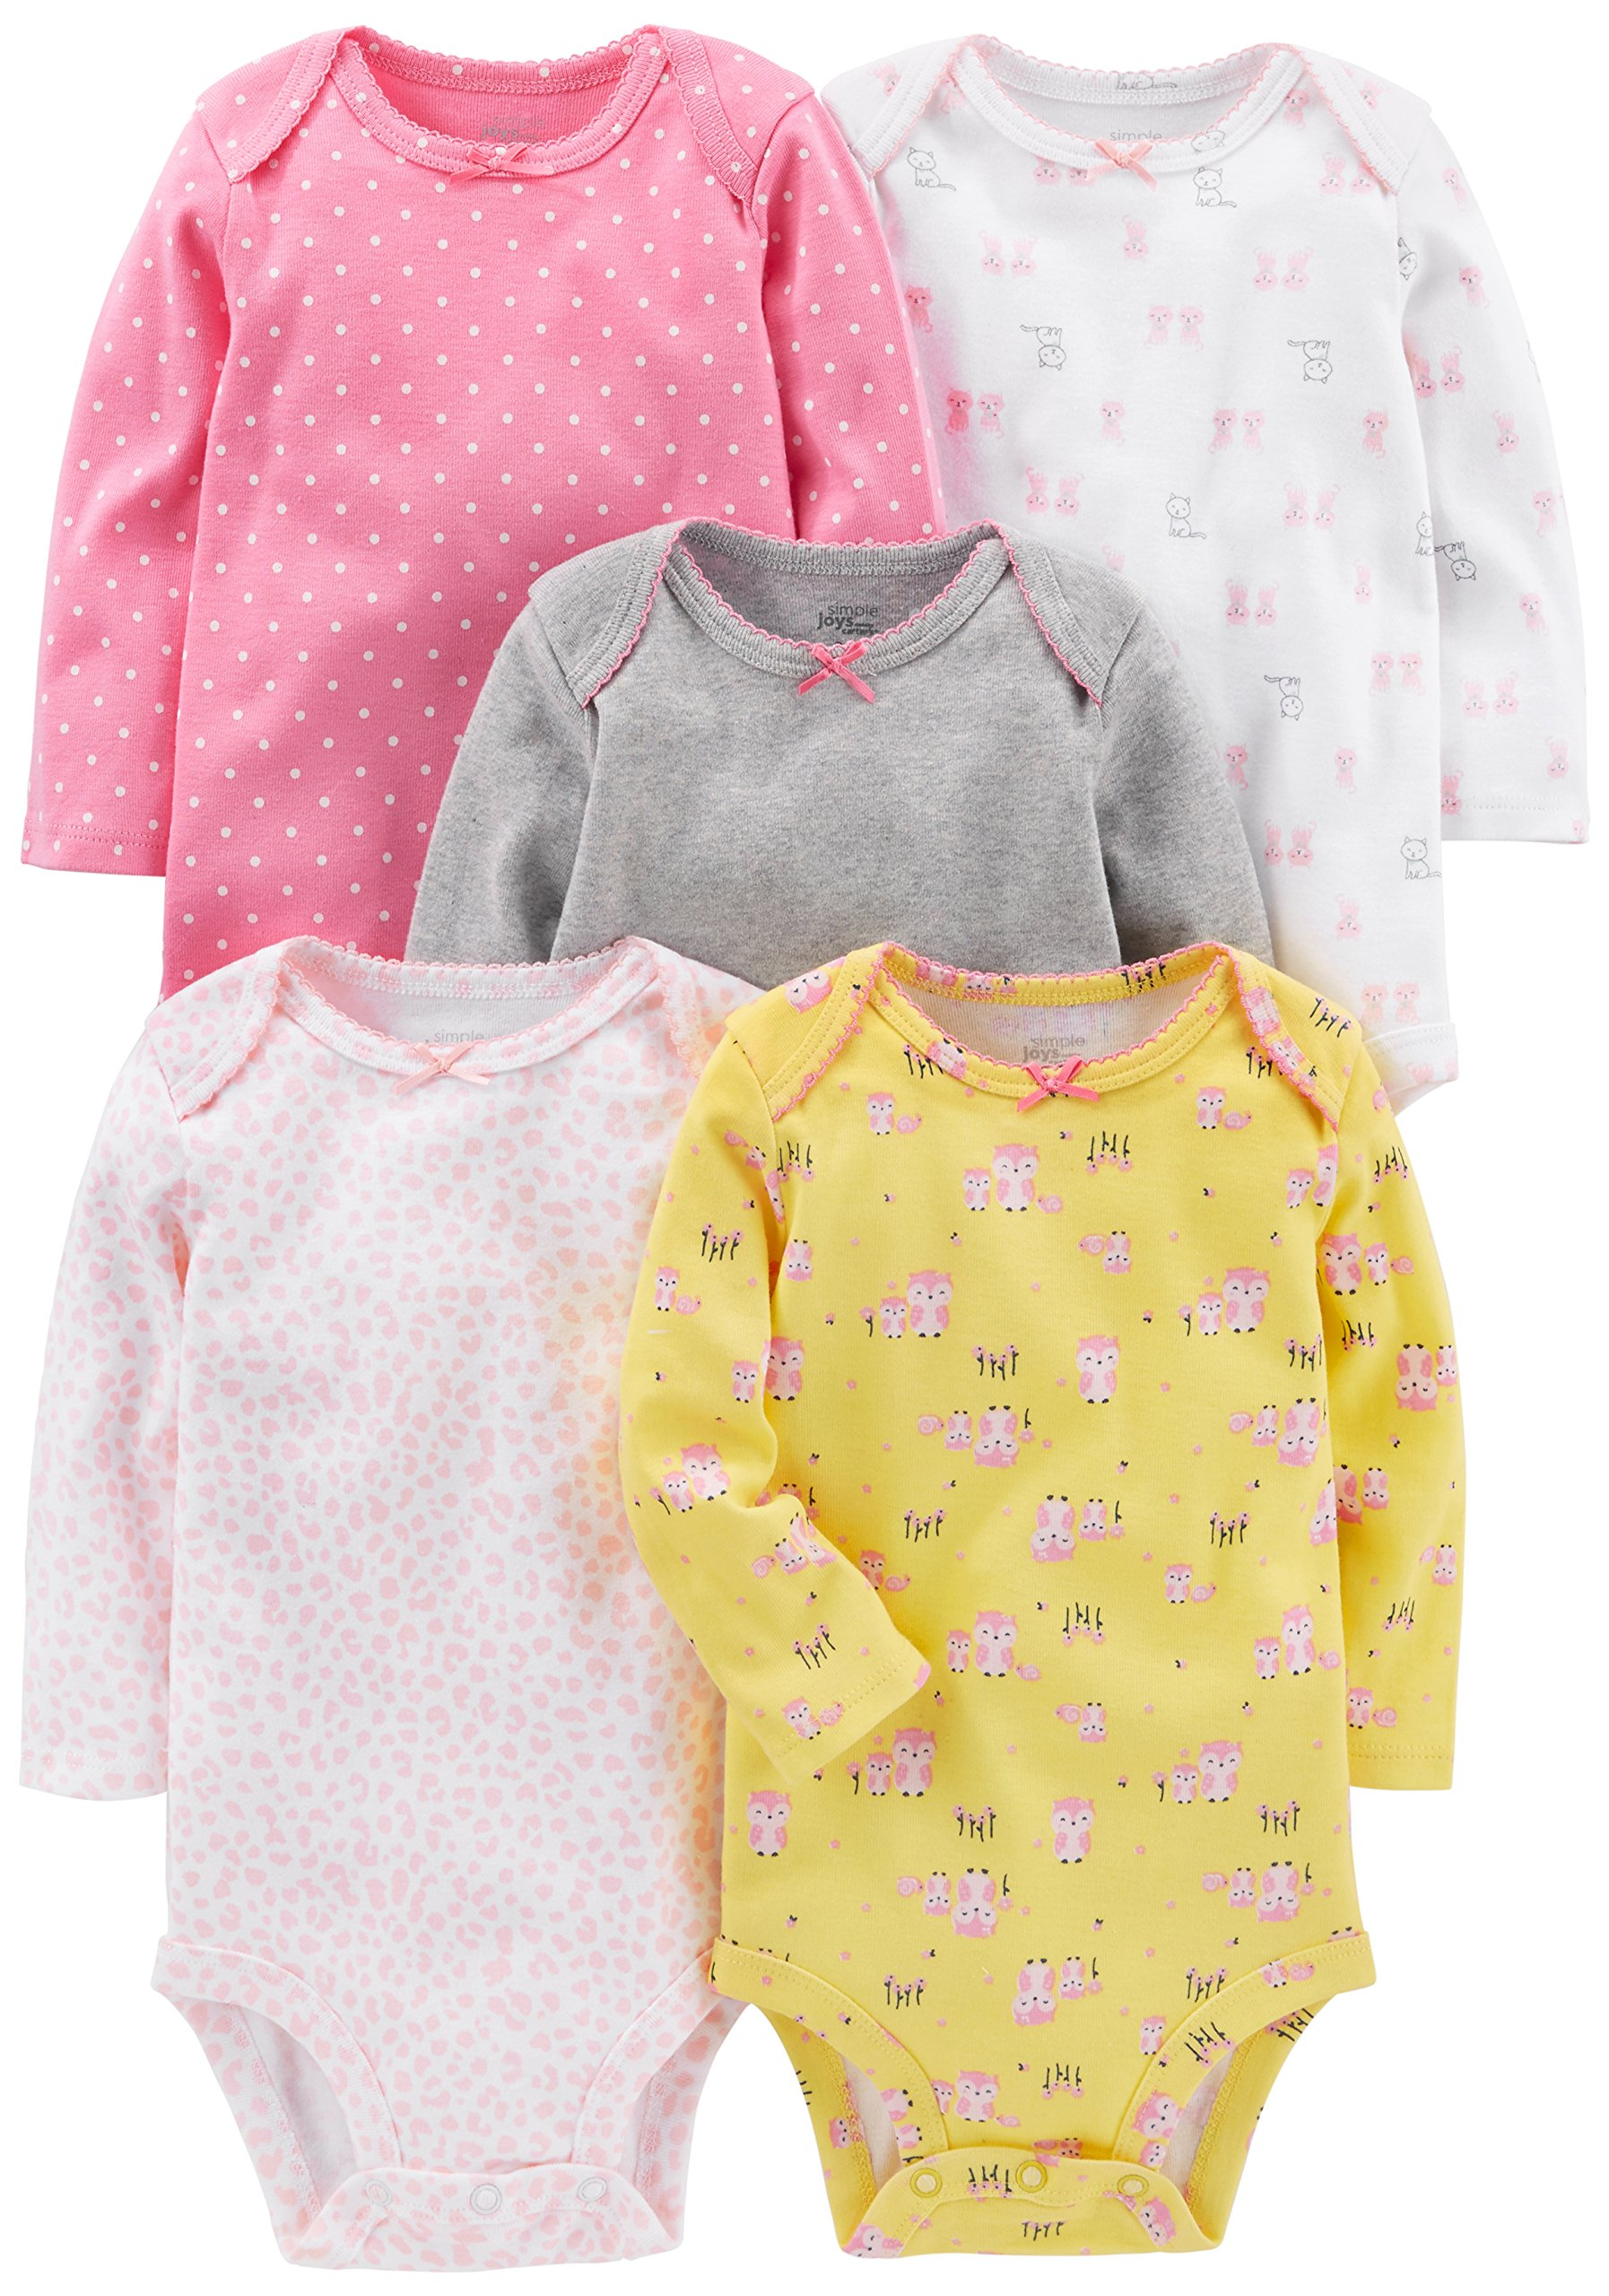 bbbc3369a2 Simple Joys by Carter s Baby Girls  5-Pack Long-Sleeve Bodysuit product  image